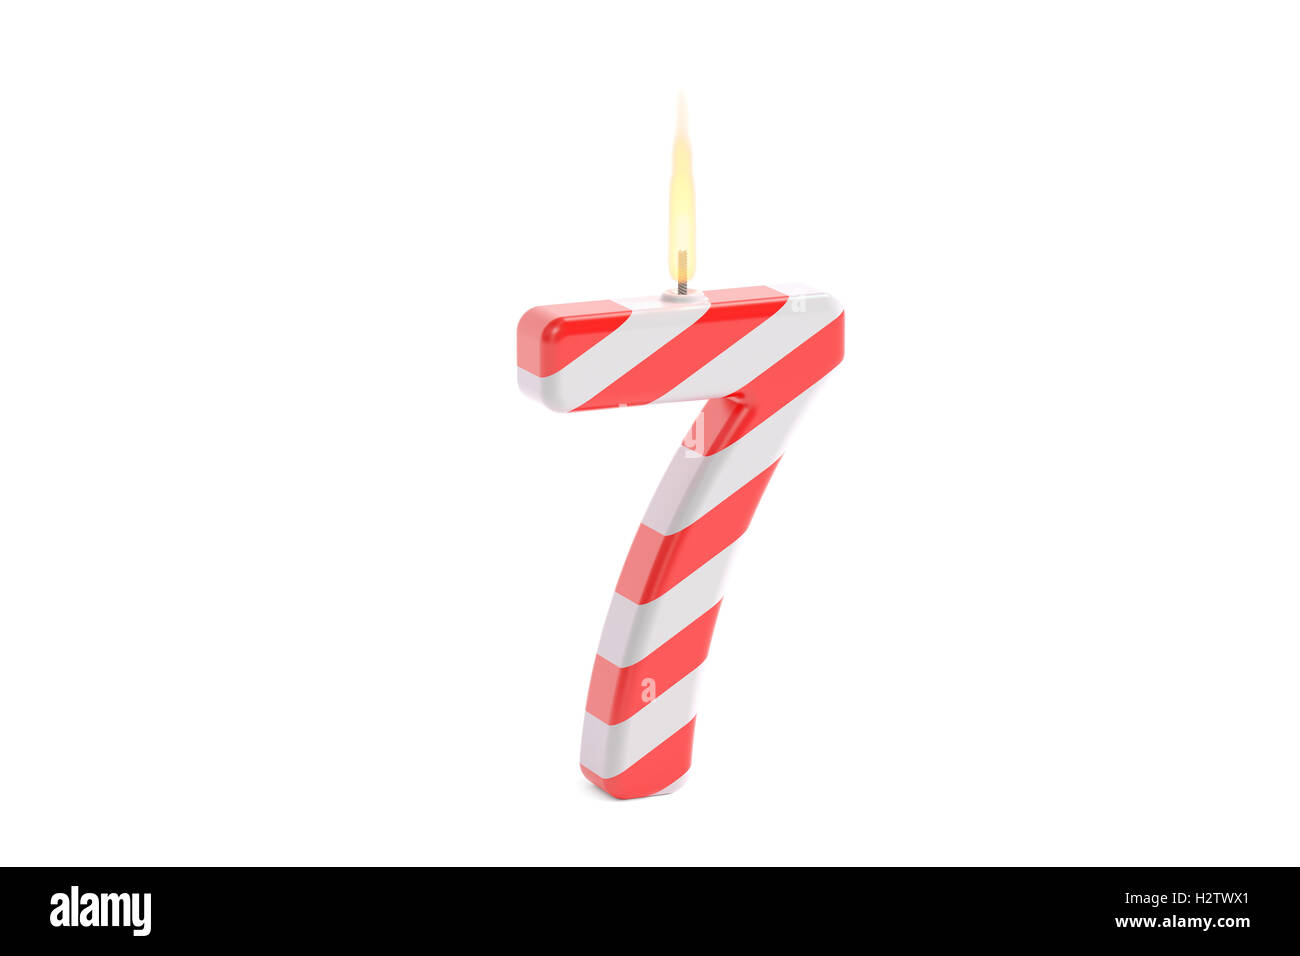 Birthday Candle With Number 7 3D Rendering Isolated On White Background